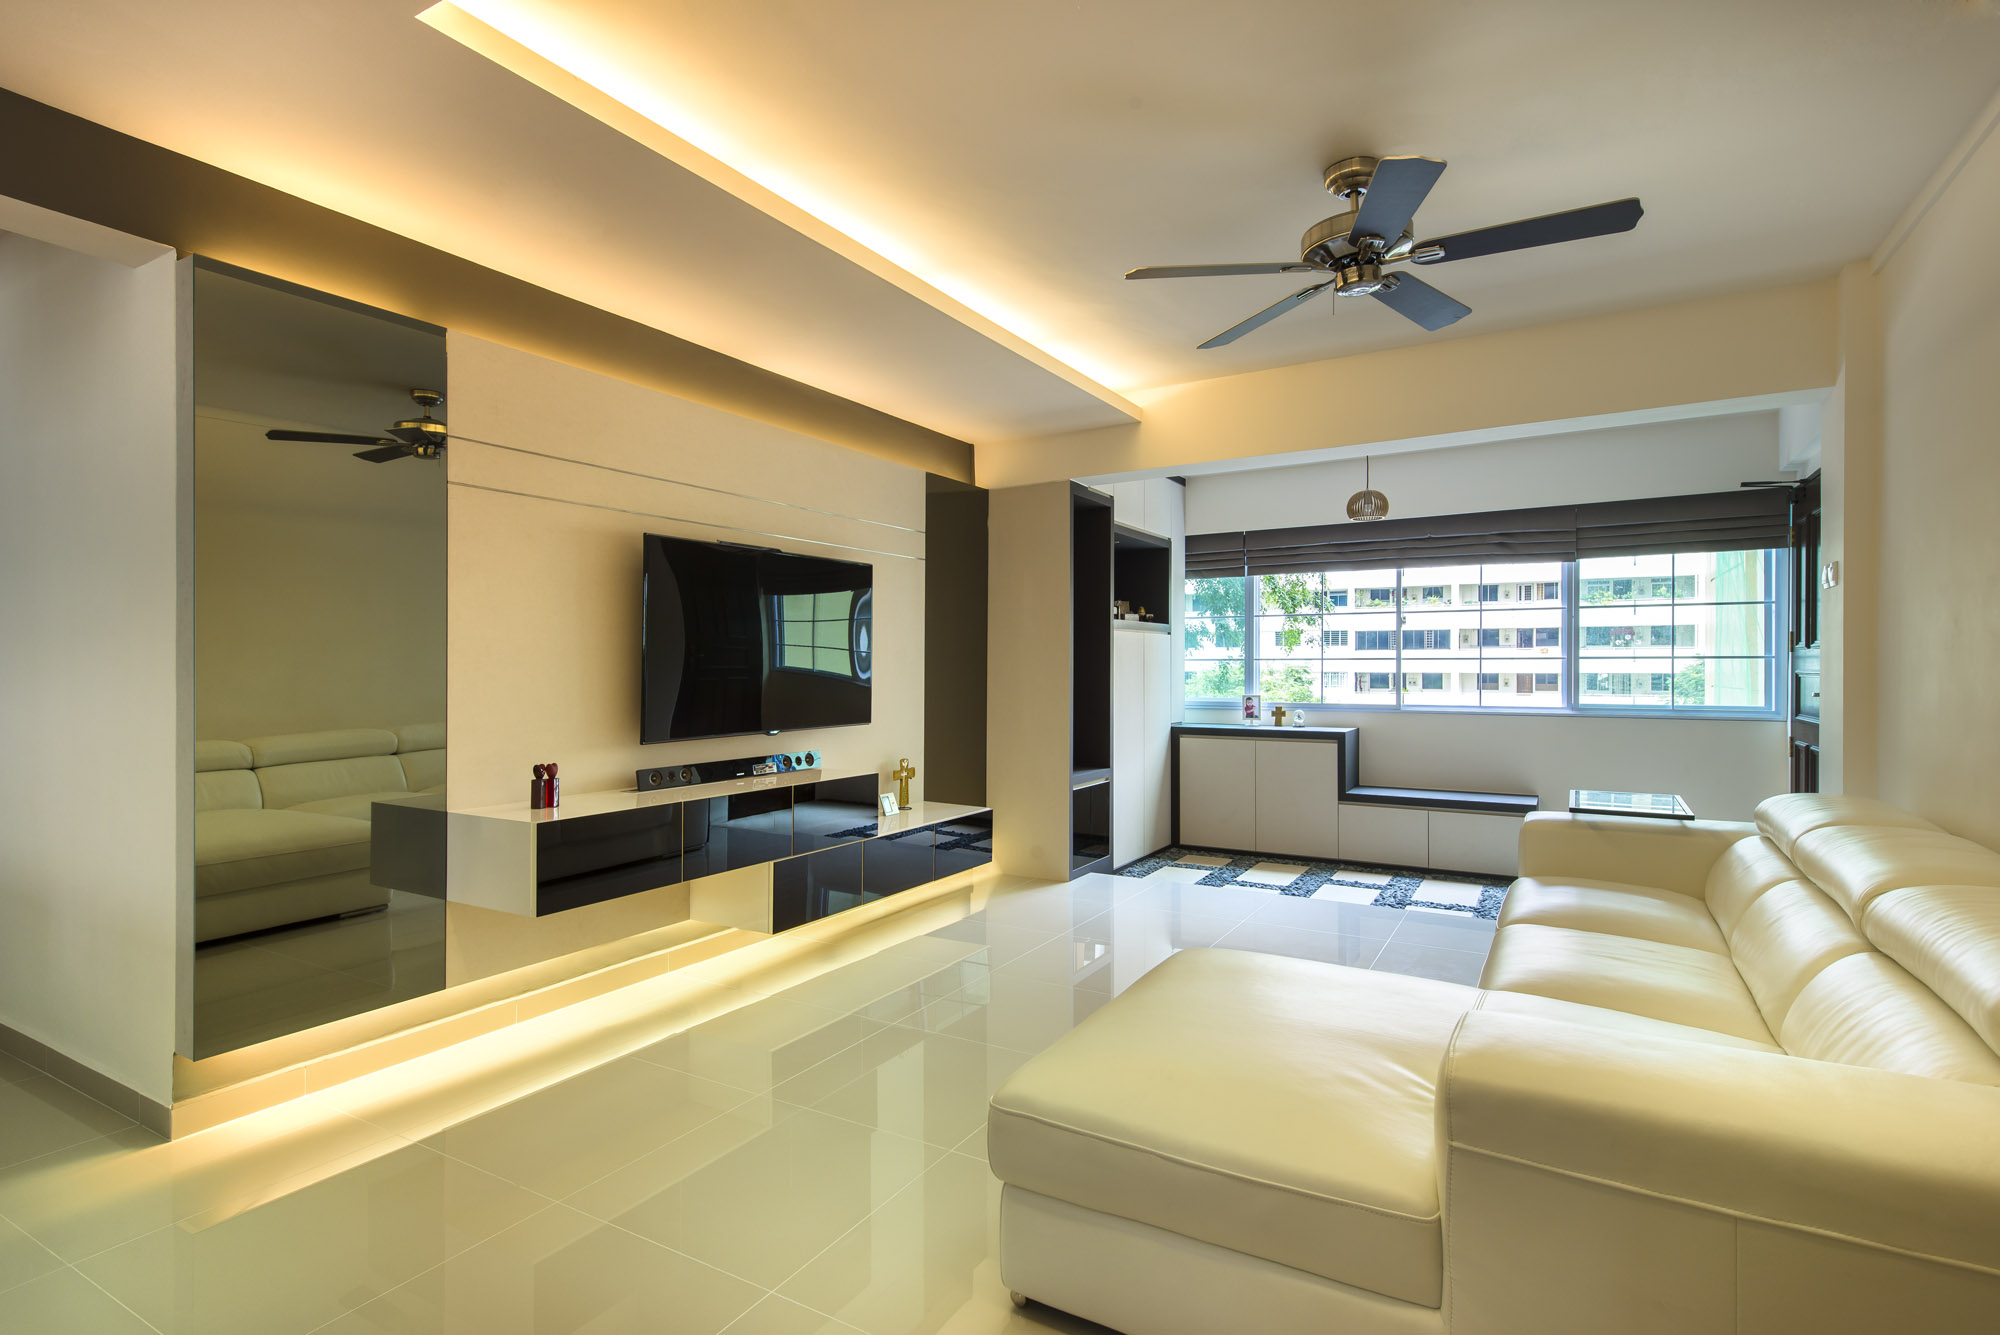 Case study hdb 5 rooms at bedok rezt relax interior for 3 room hdb design ideas